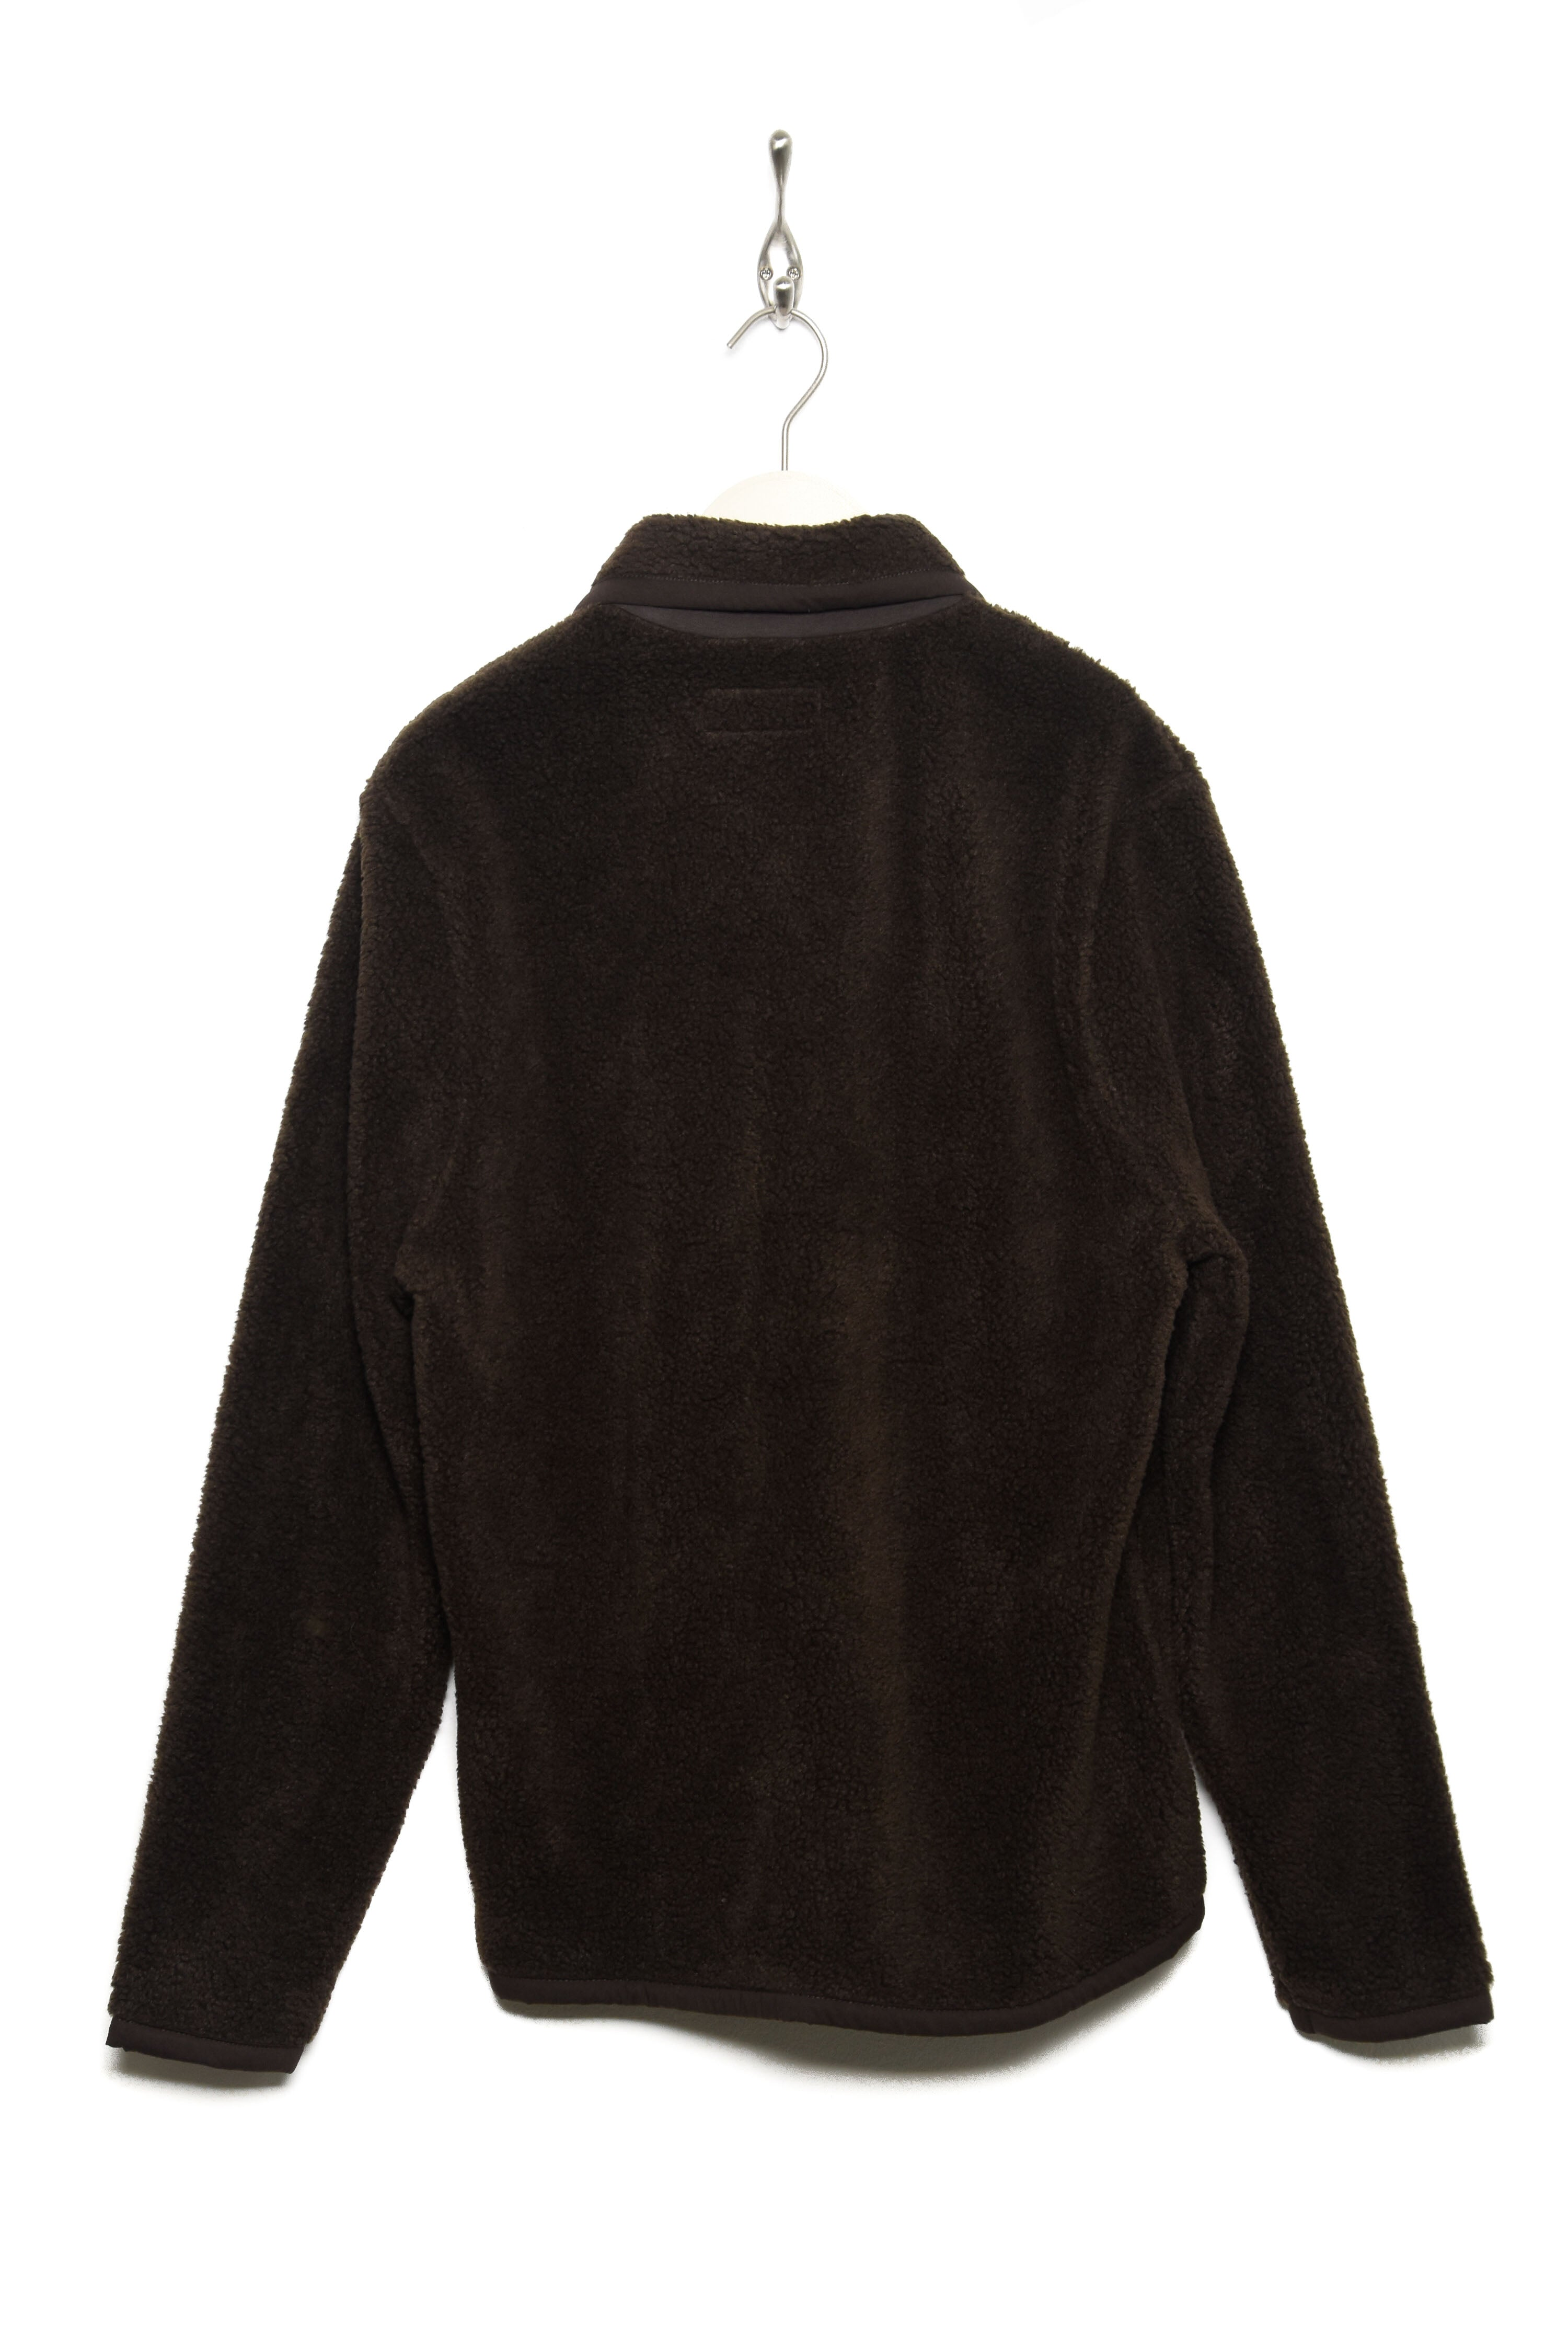 Lancaster Jacket Mountain Fleece 23686 chocolate